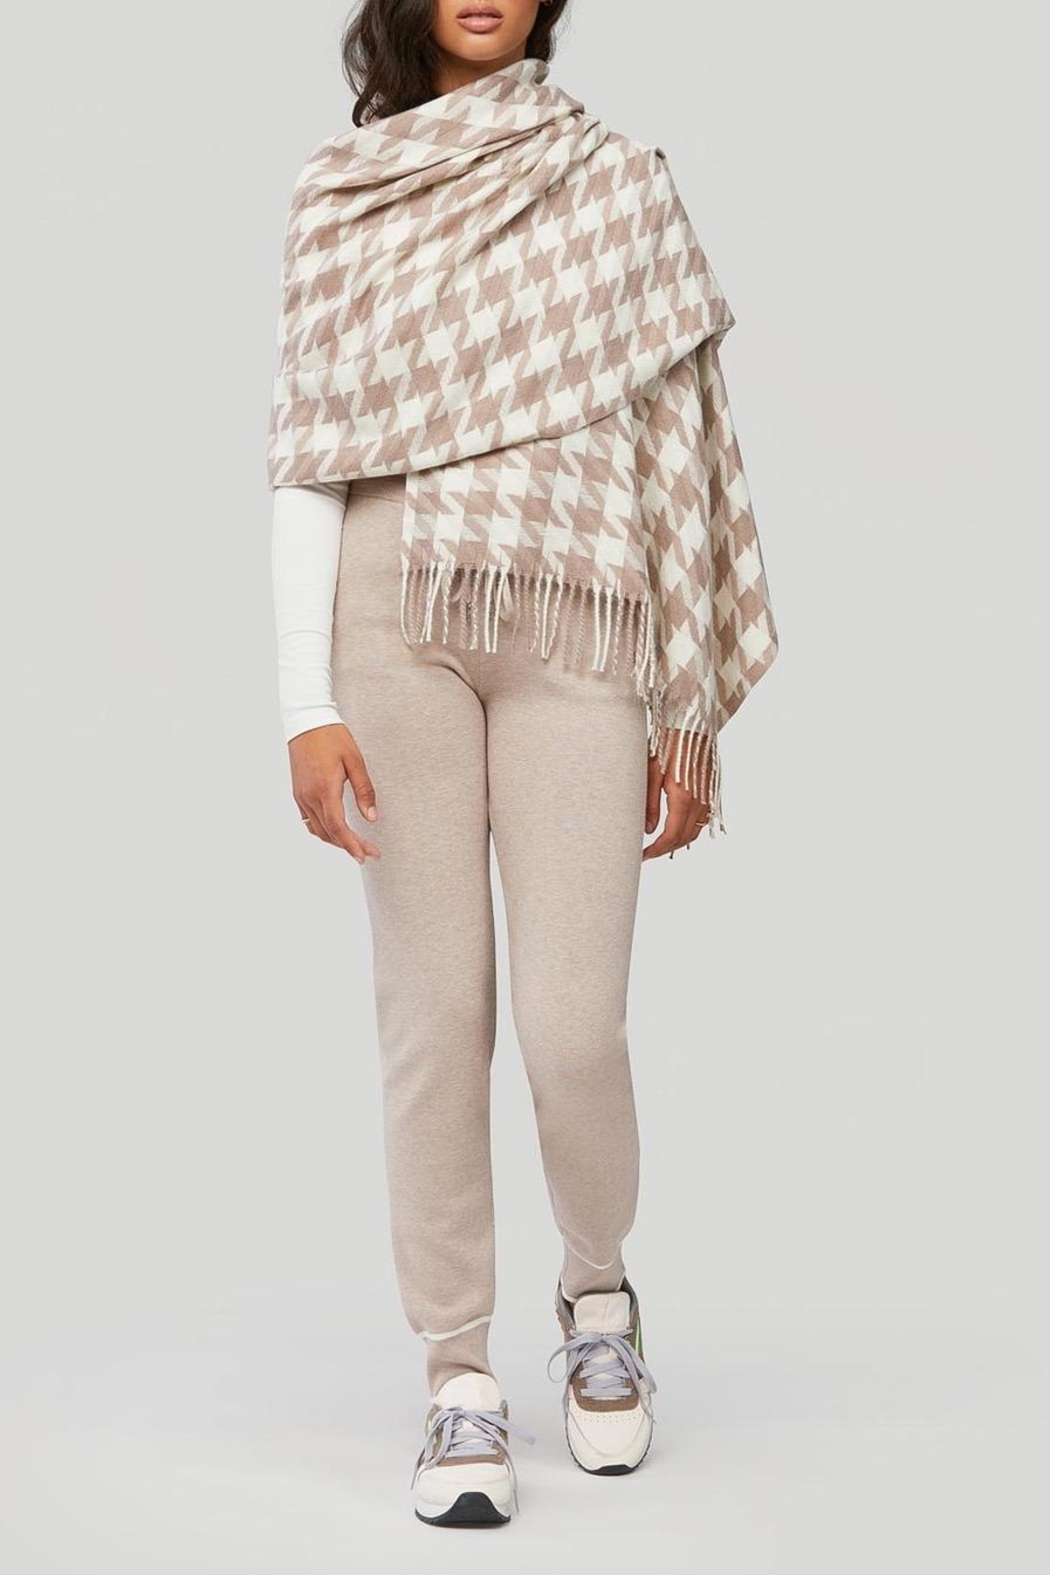 Soia & Kyo Sania Woven Jacquard Scarf With Houndstooth Pattern - Front Full Image